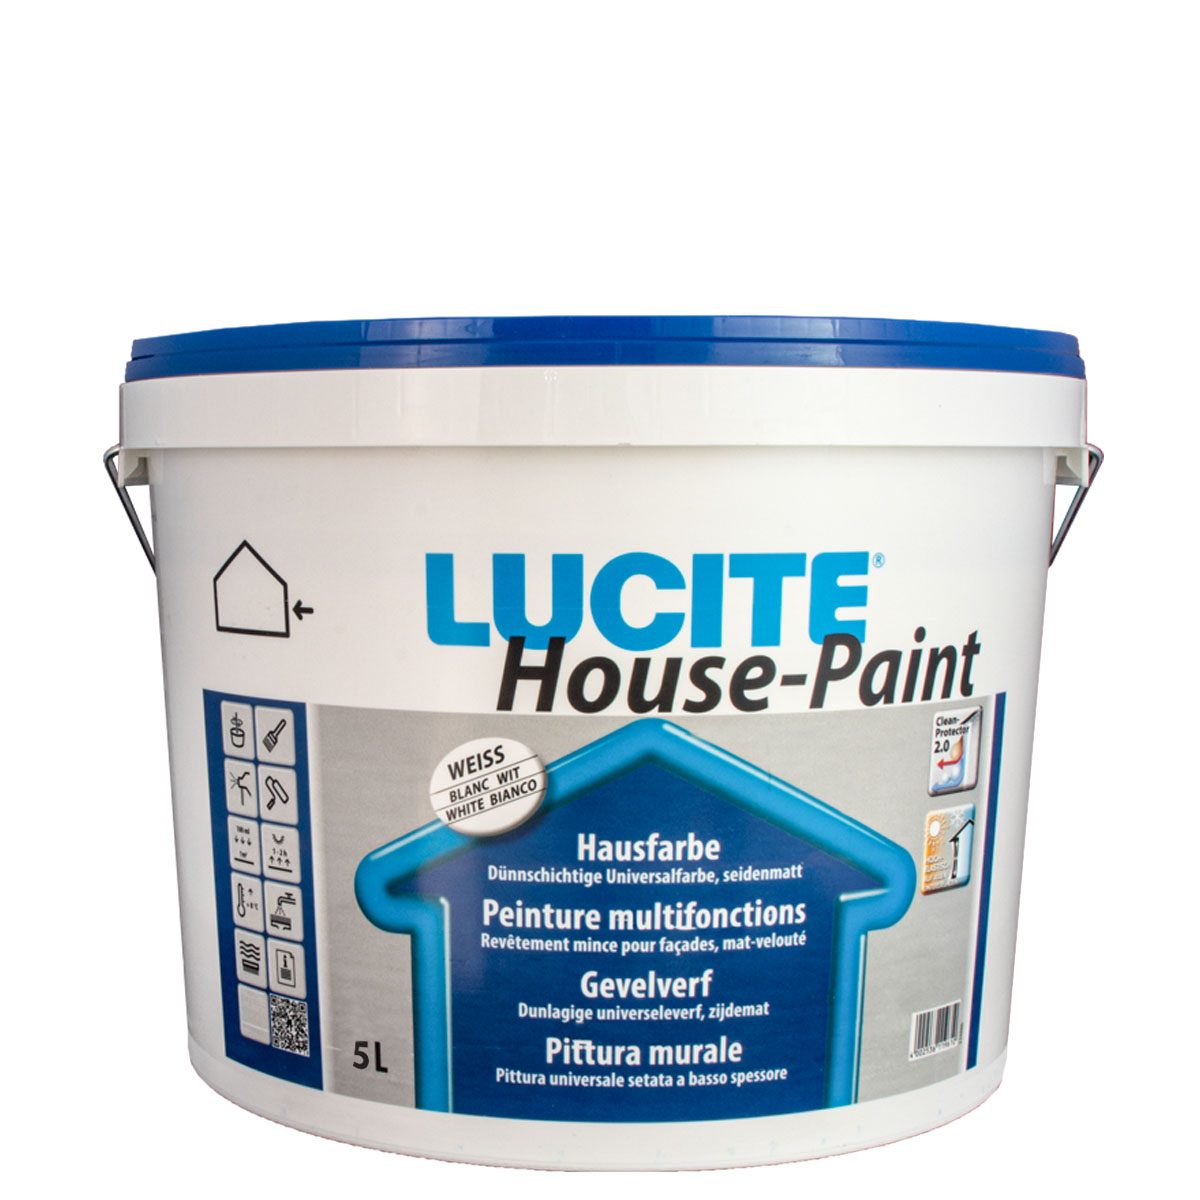 Lucite House Paint 5L weiss 1000T ,Hausfarbe, Fassadenfarbe